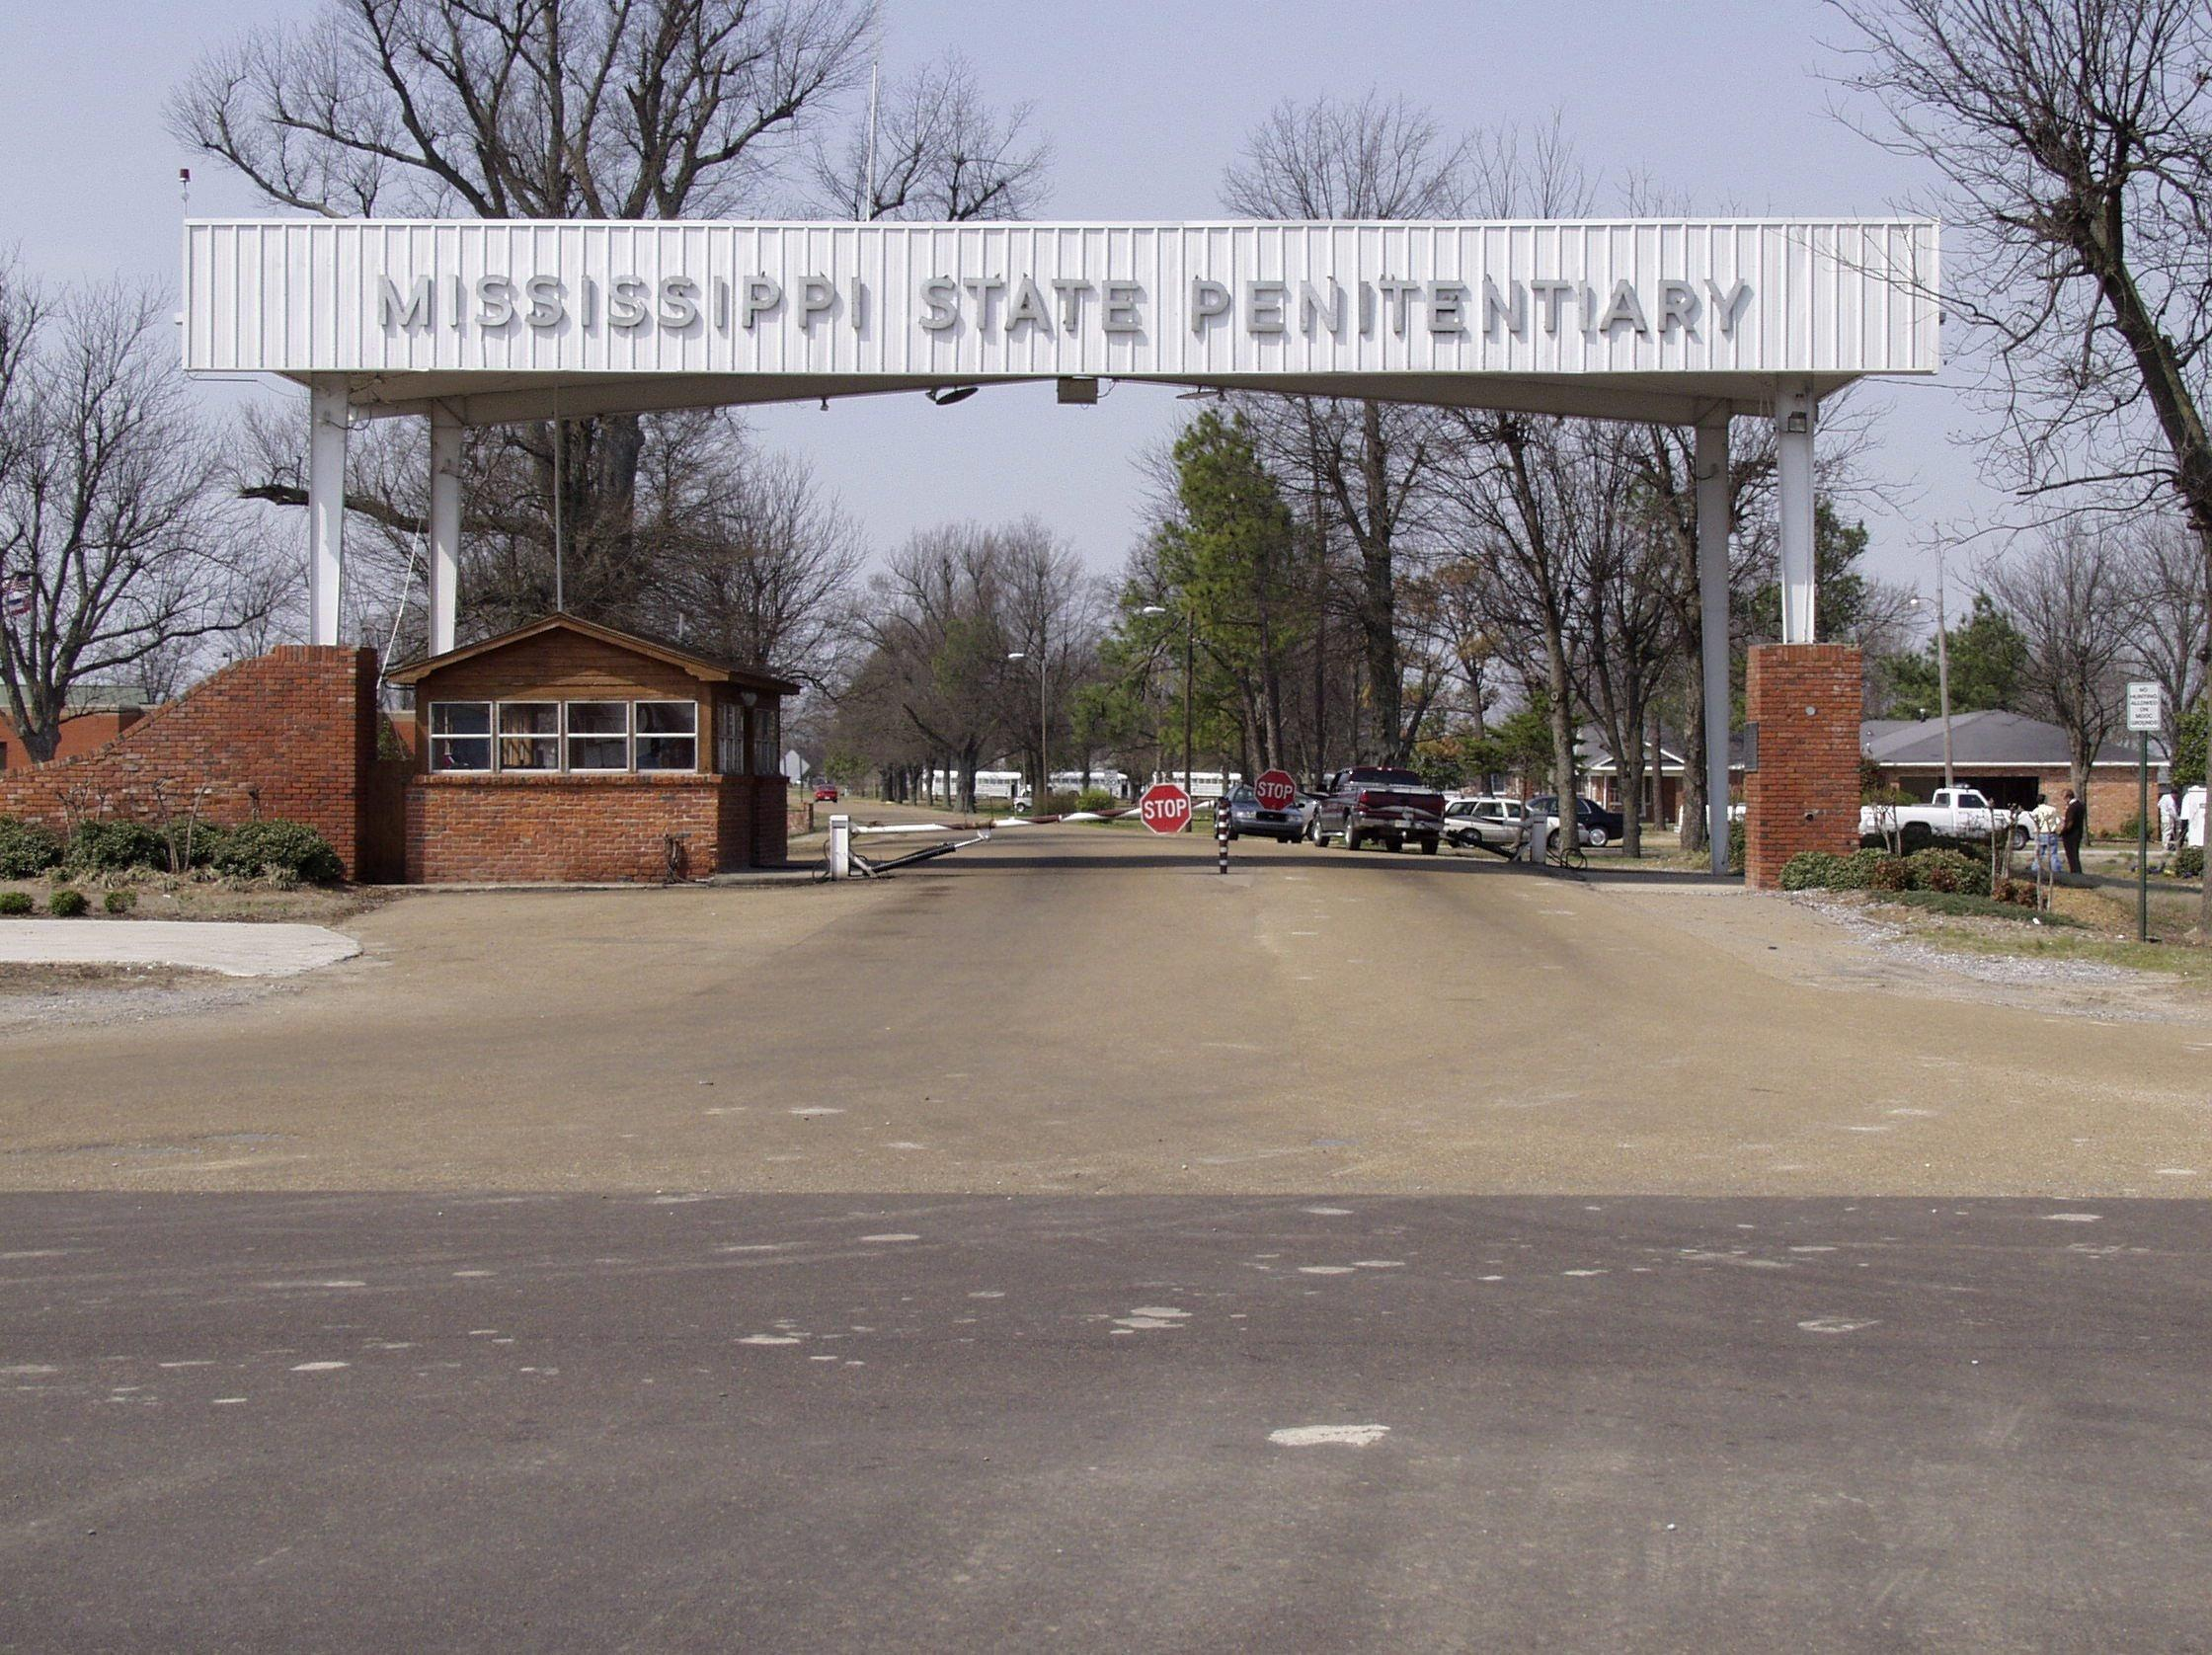 Image: Undated photo shows the entrance of the Mississippi State Penitentiary